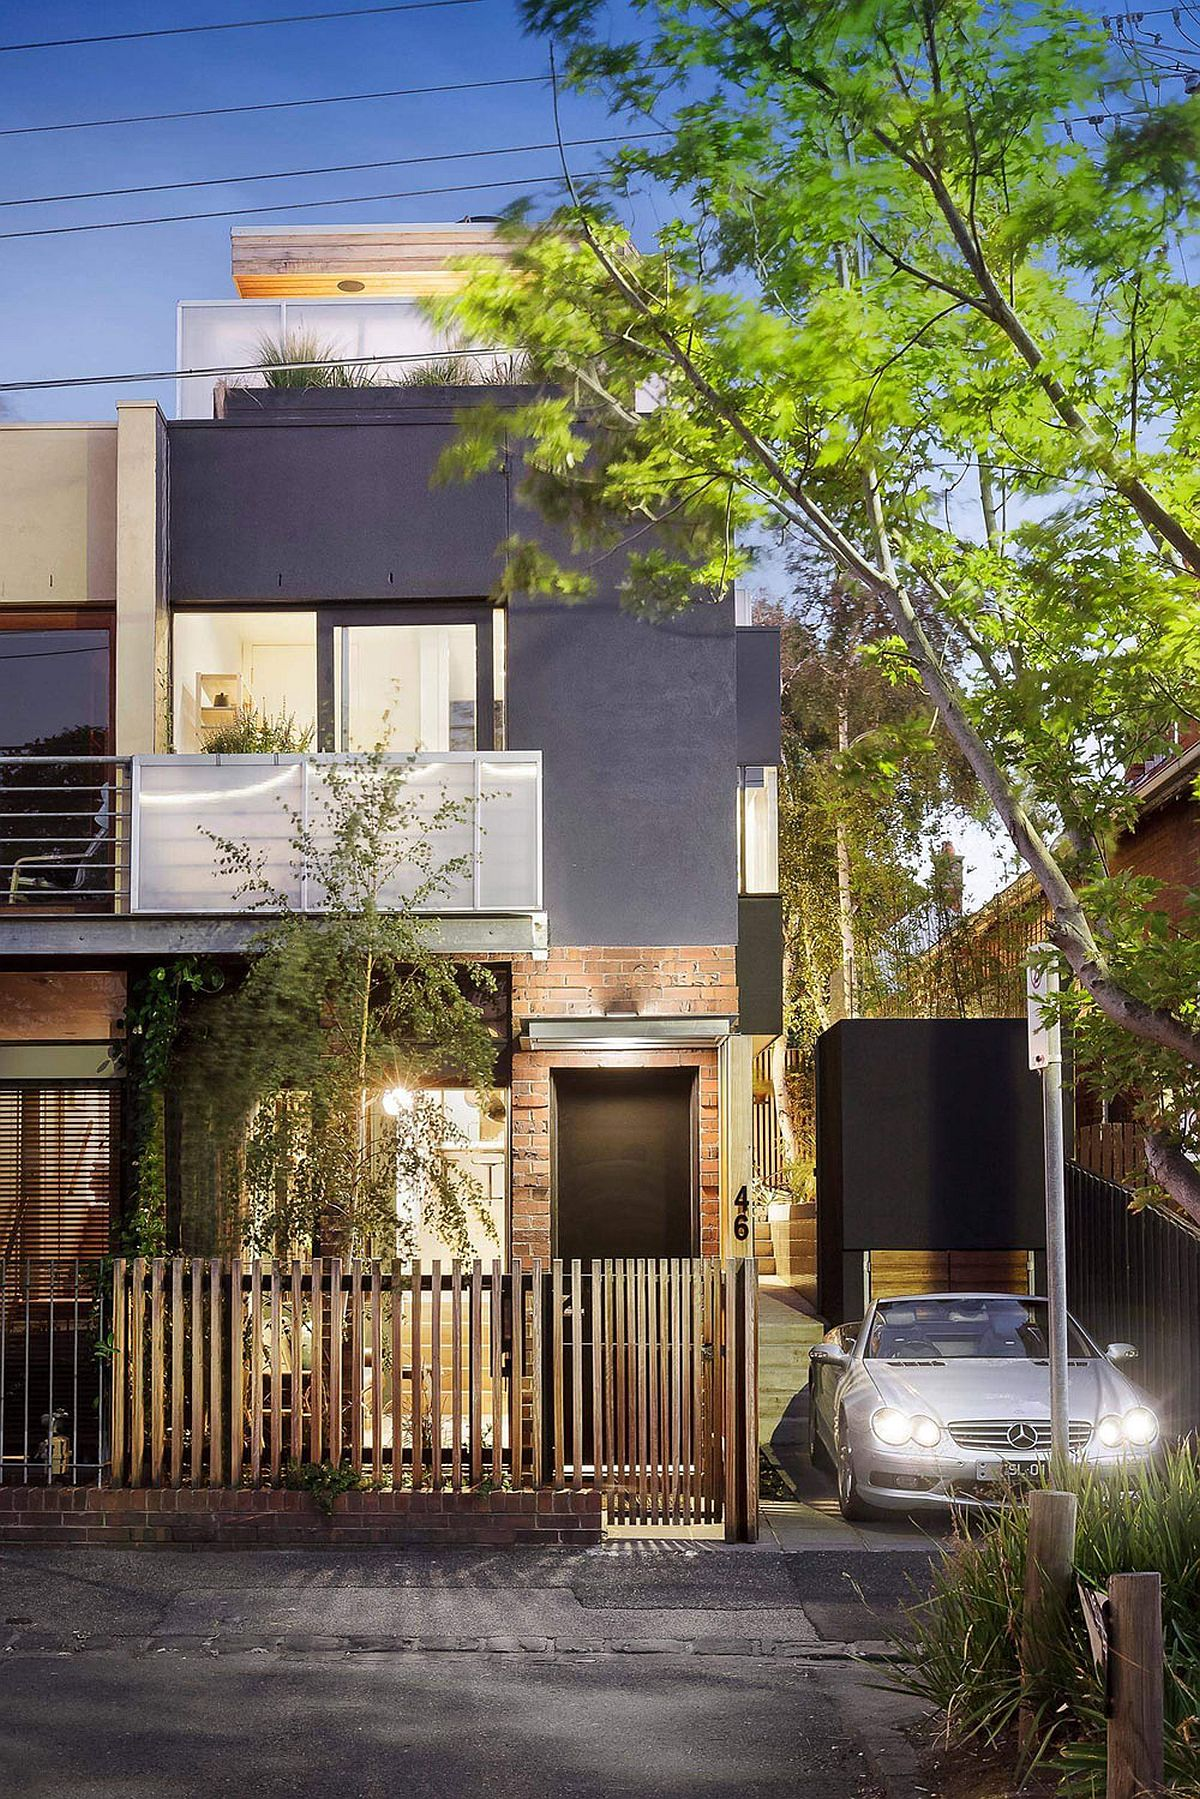 Street view of the Windsor Residence in Australia